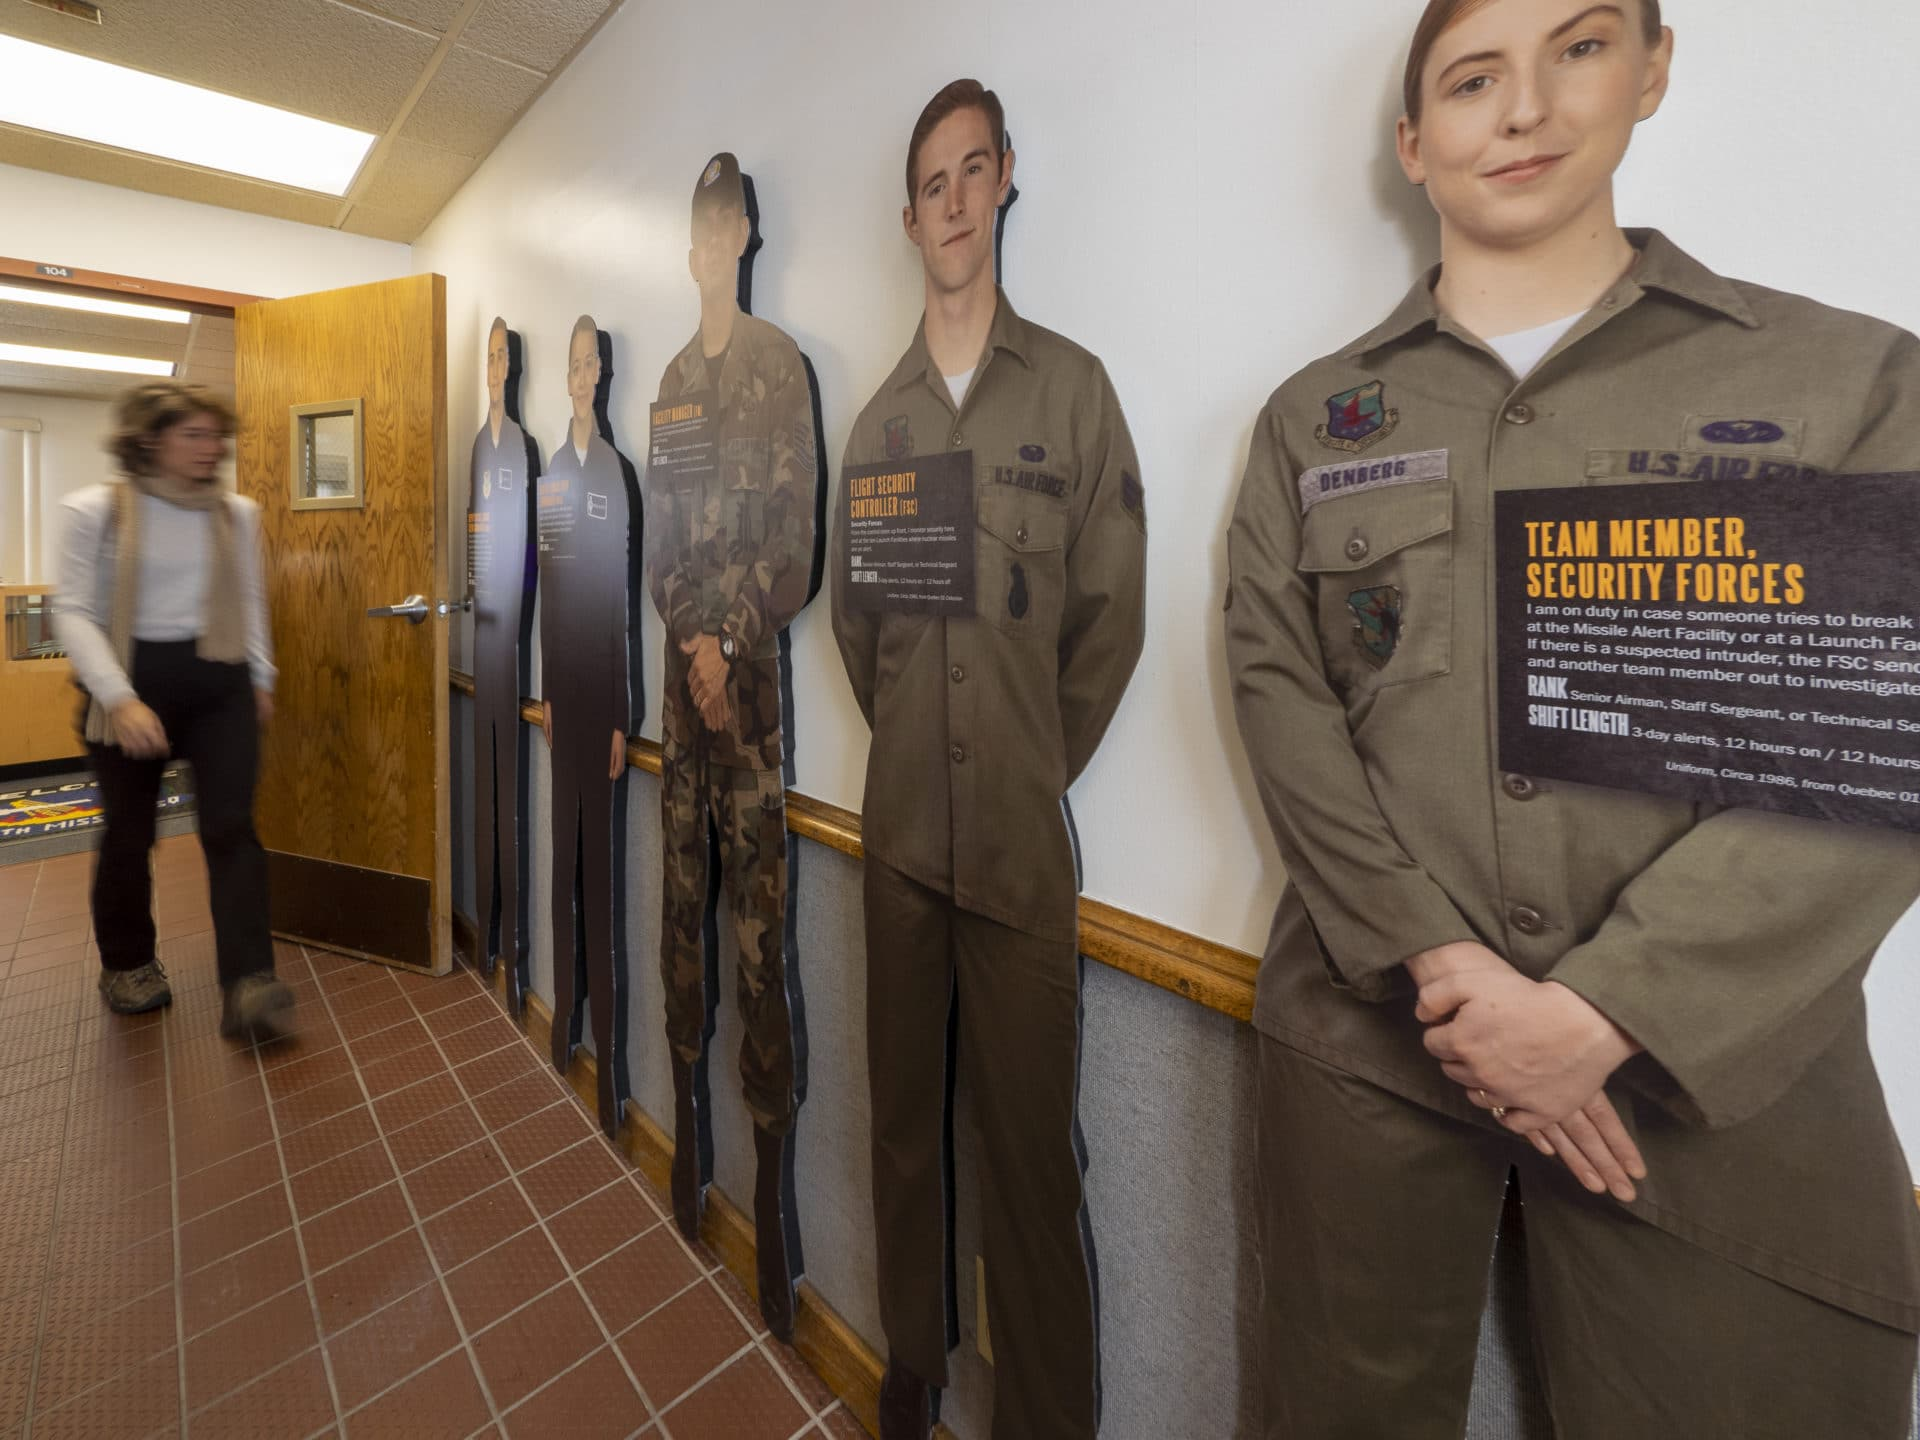 Personnel-Focused Exhibit at Quebec 01 Peacekeeper Site in Wyoming